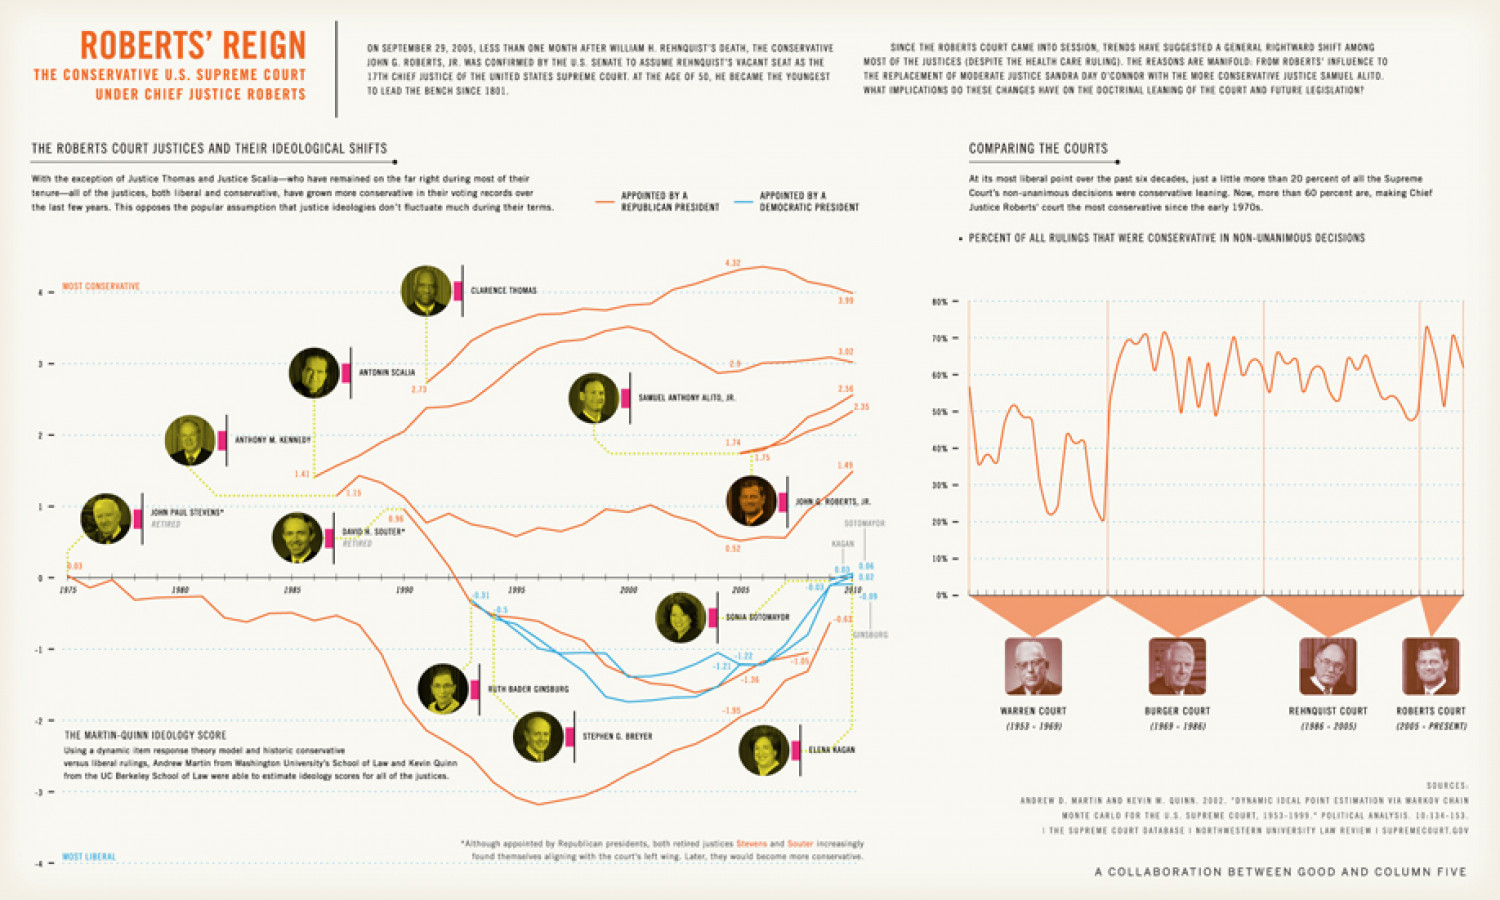 Roberts' Reign: The Conservative Court Justices and Their Ideological Shifts Infographic